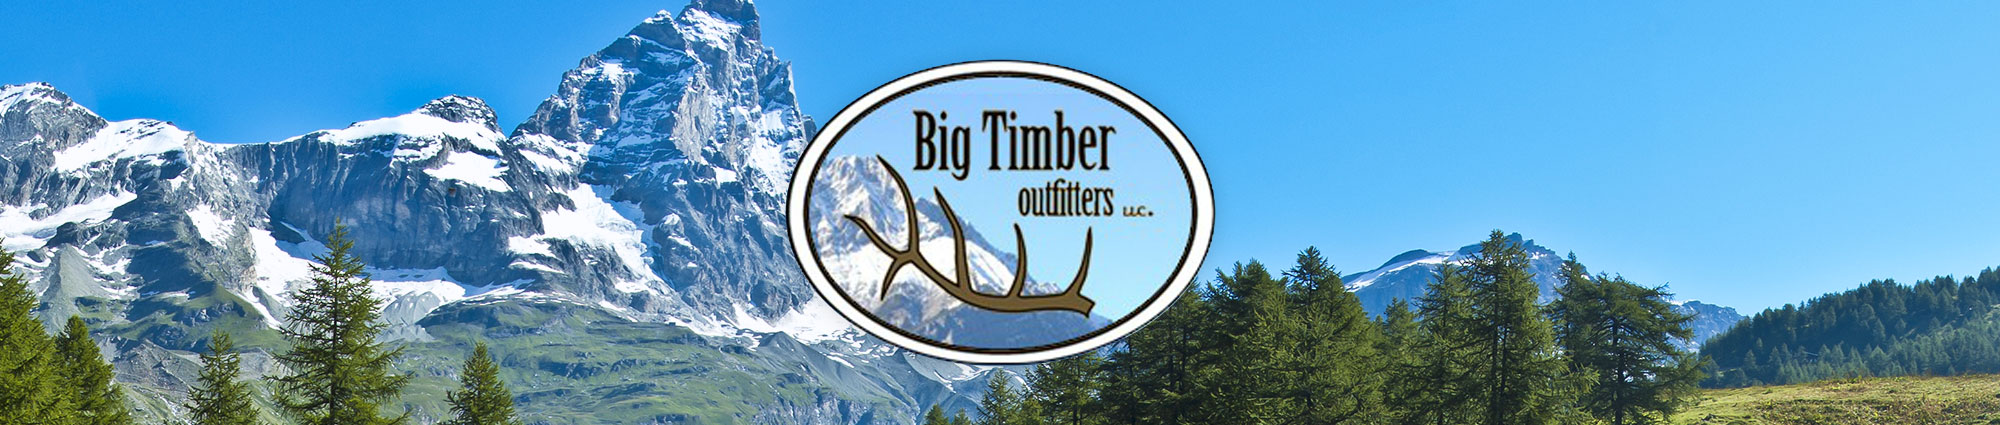 Big Timber Outfitters LLC